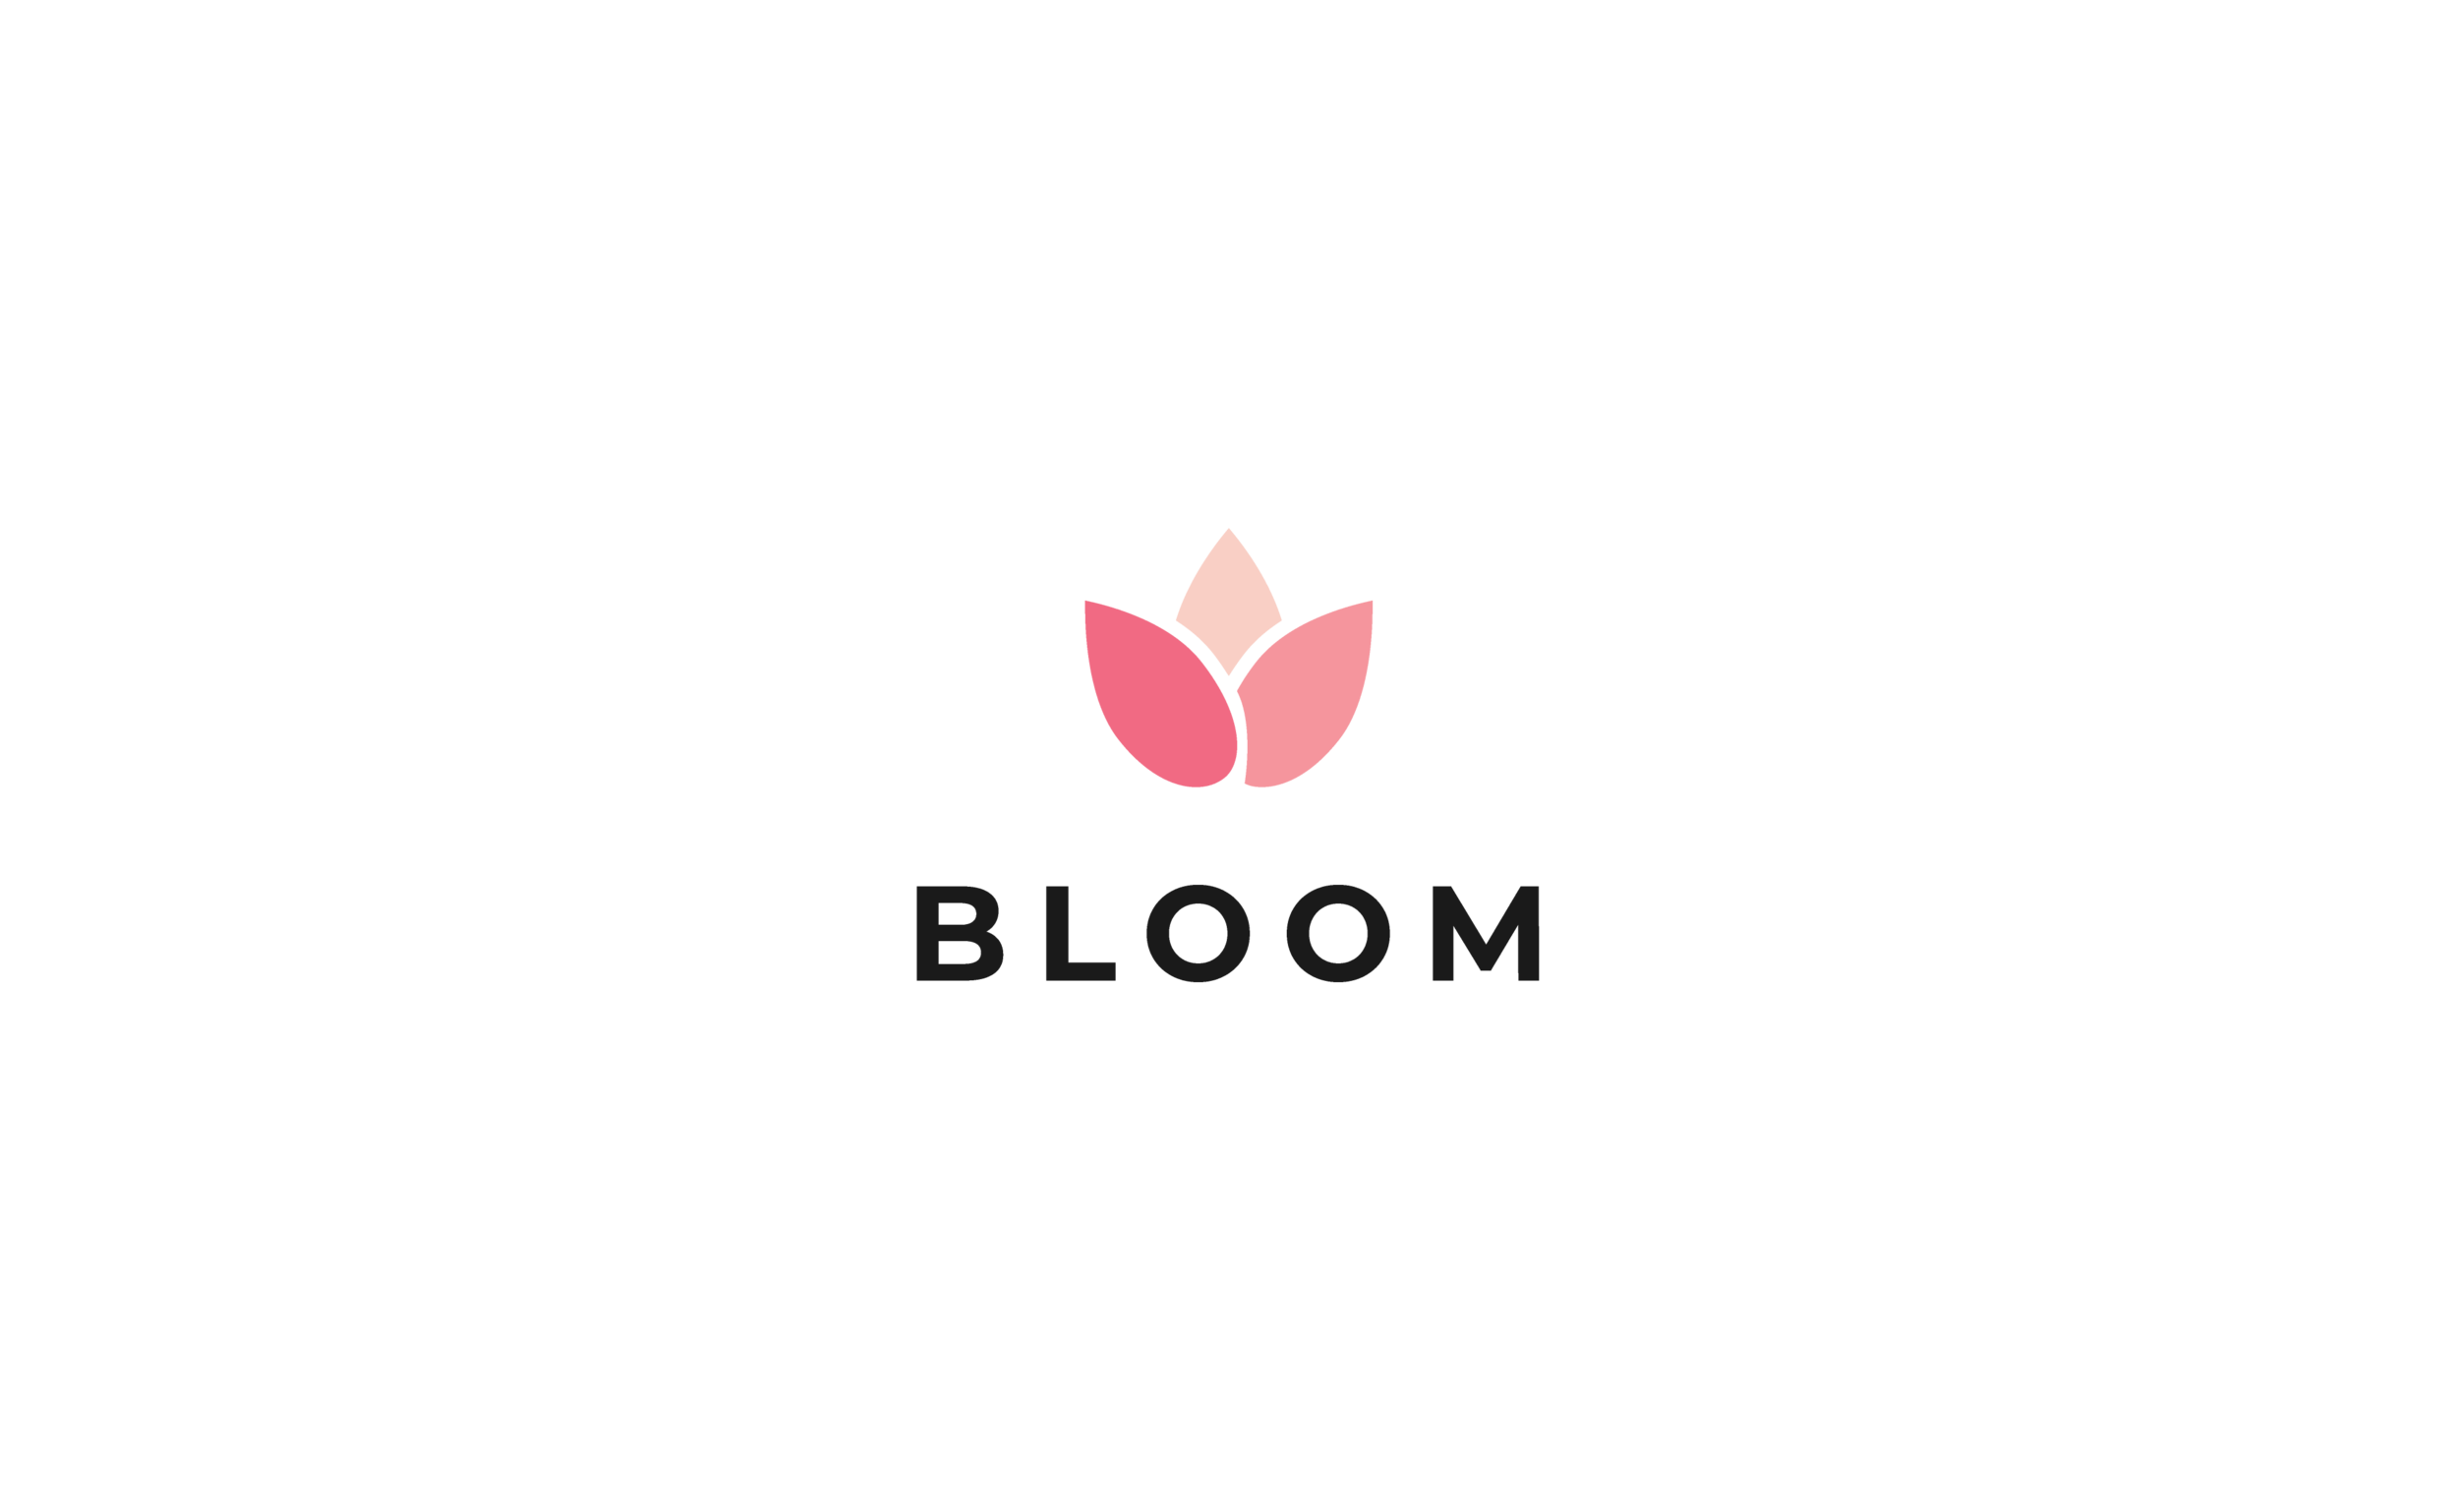 BloomFoundation_Basic_Vertical.png